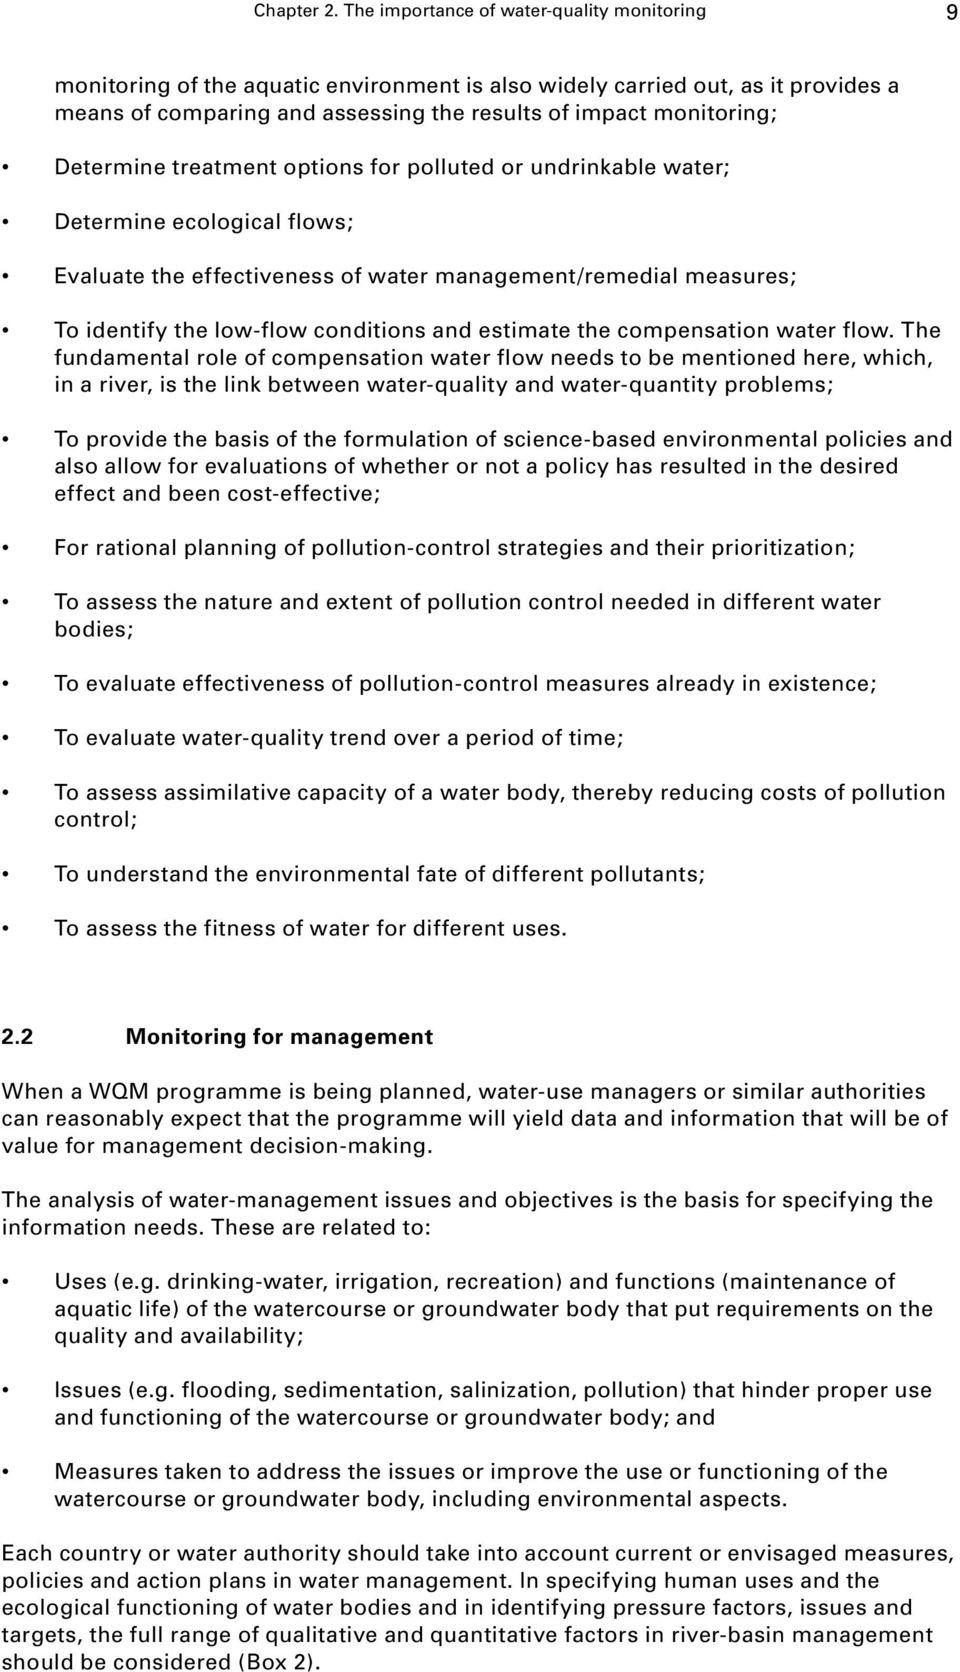 Determine treatment options for polluted or undrinkable water; Determine ecological flows; Evaluate the effectiveness of water management/remedial measures; To identify the low-flow conditions and